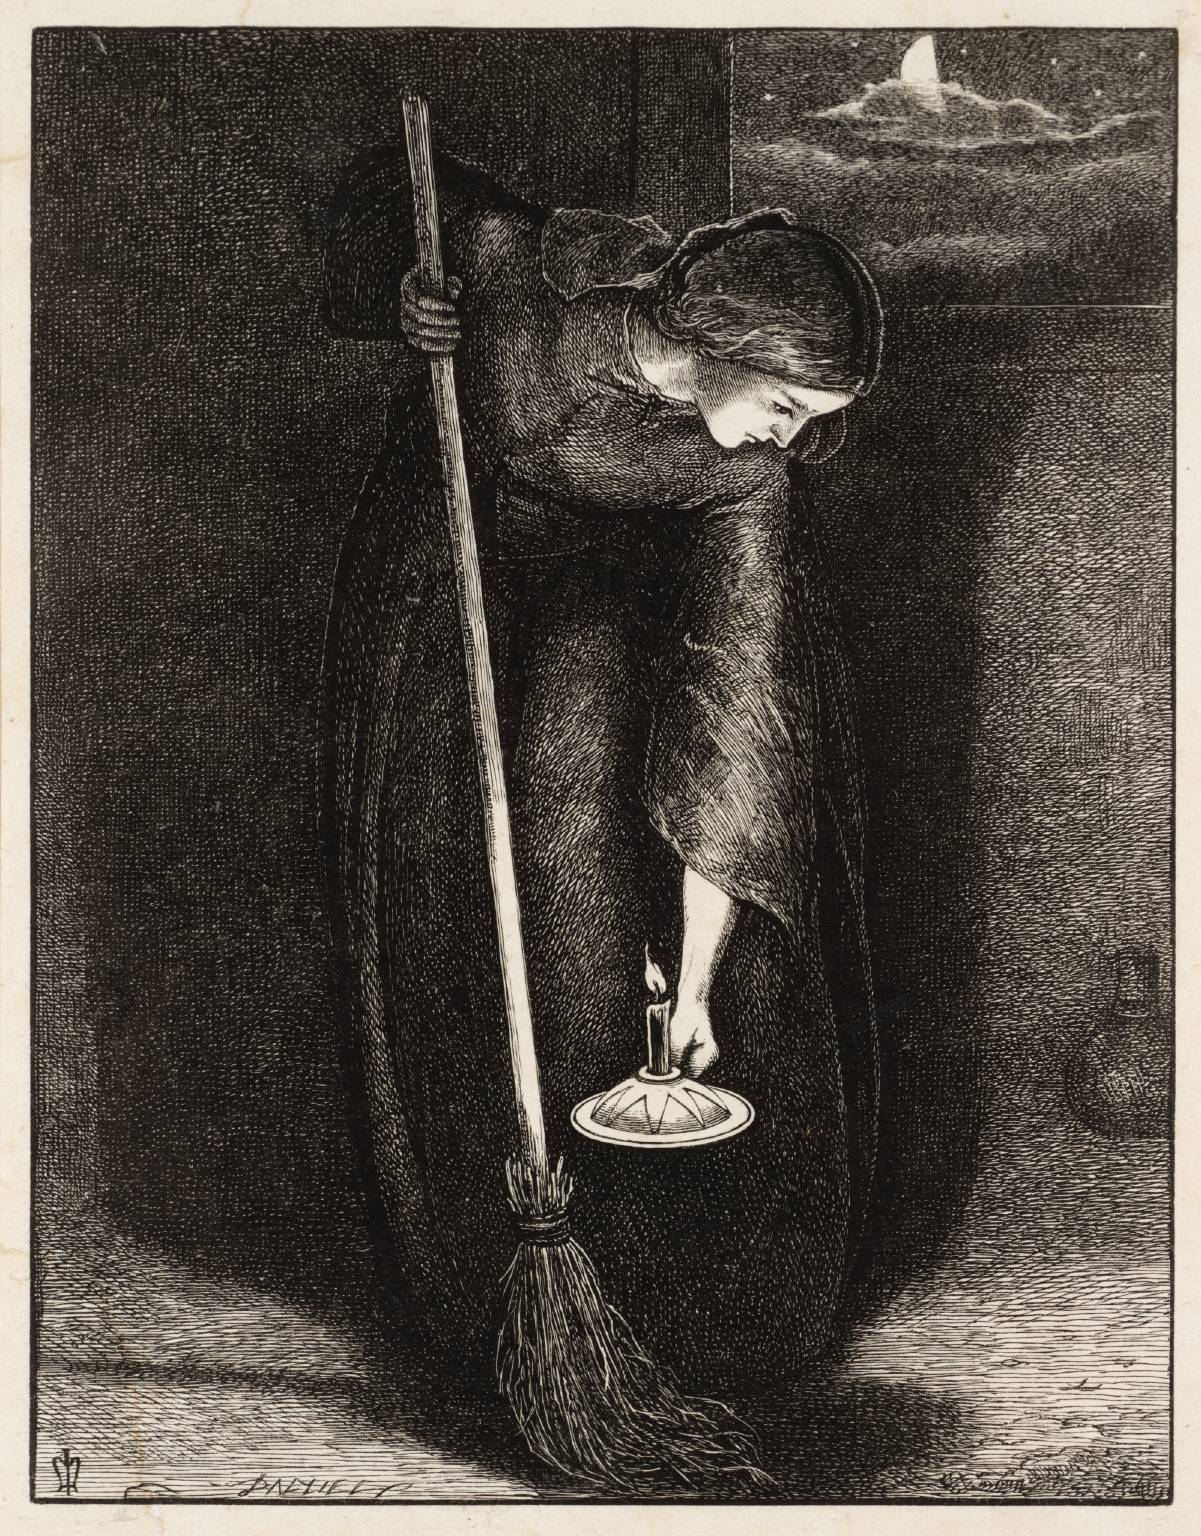 The Lost Piece of Silver published 1864 by Sir John Everett Millais, Bt 1829-1896